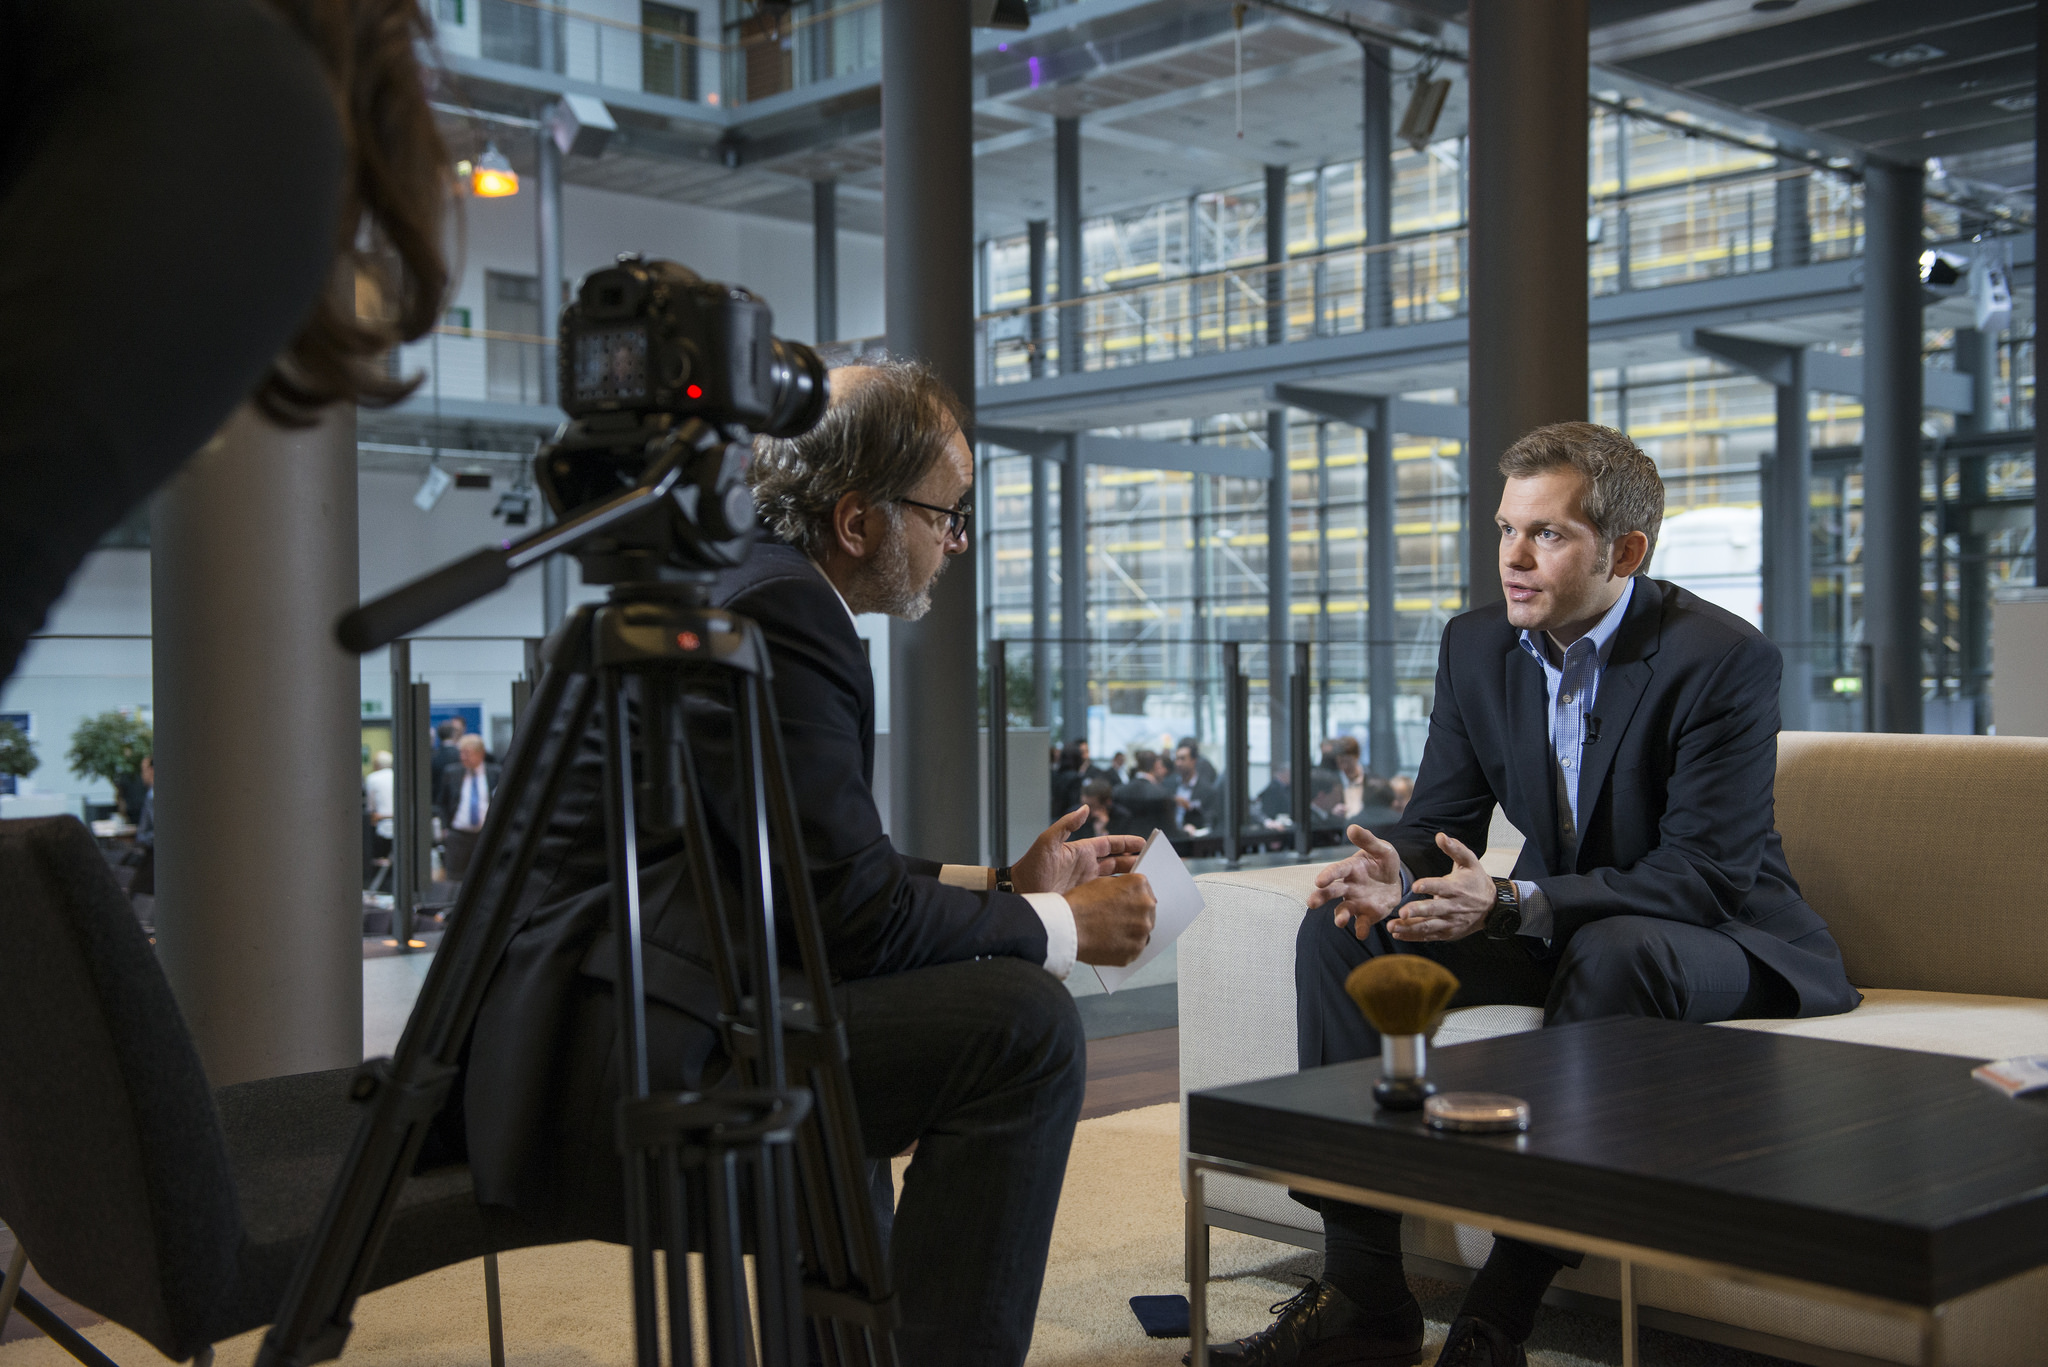 Video Interview: Digitale Transformation